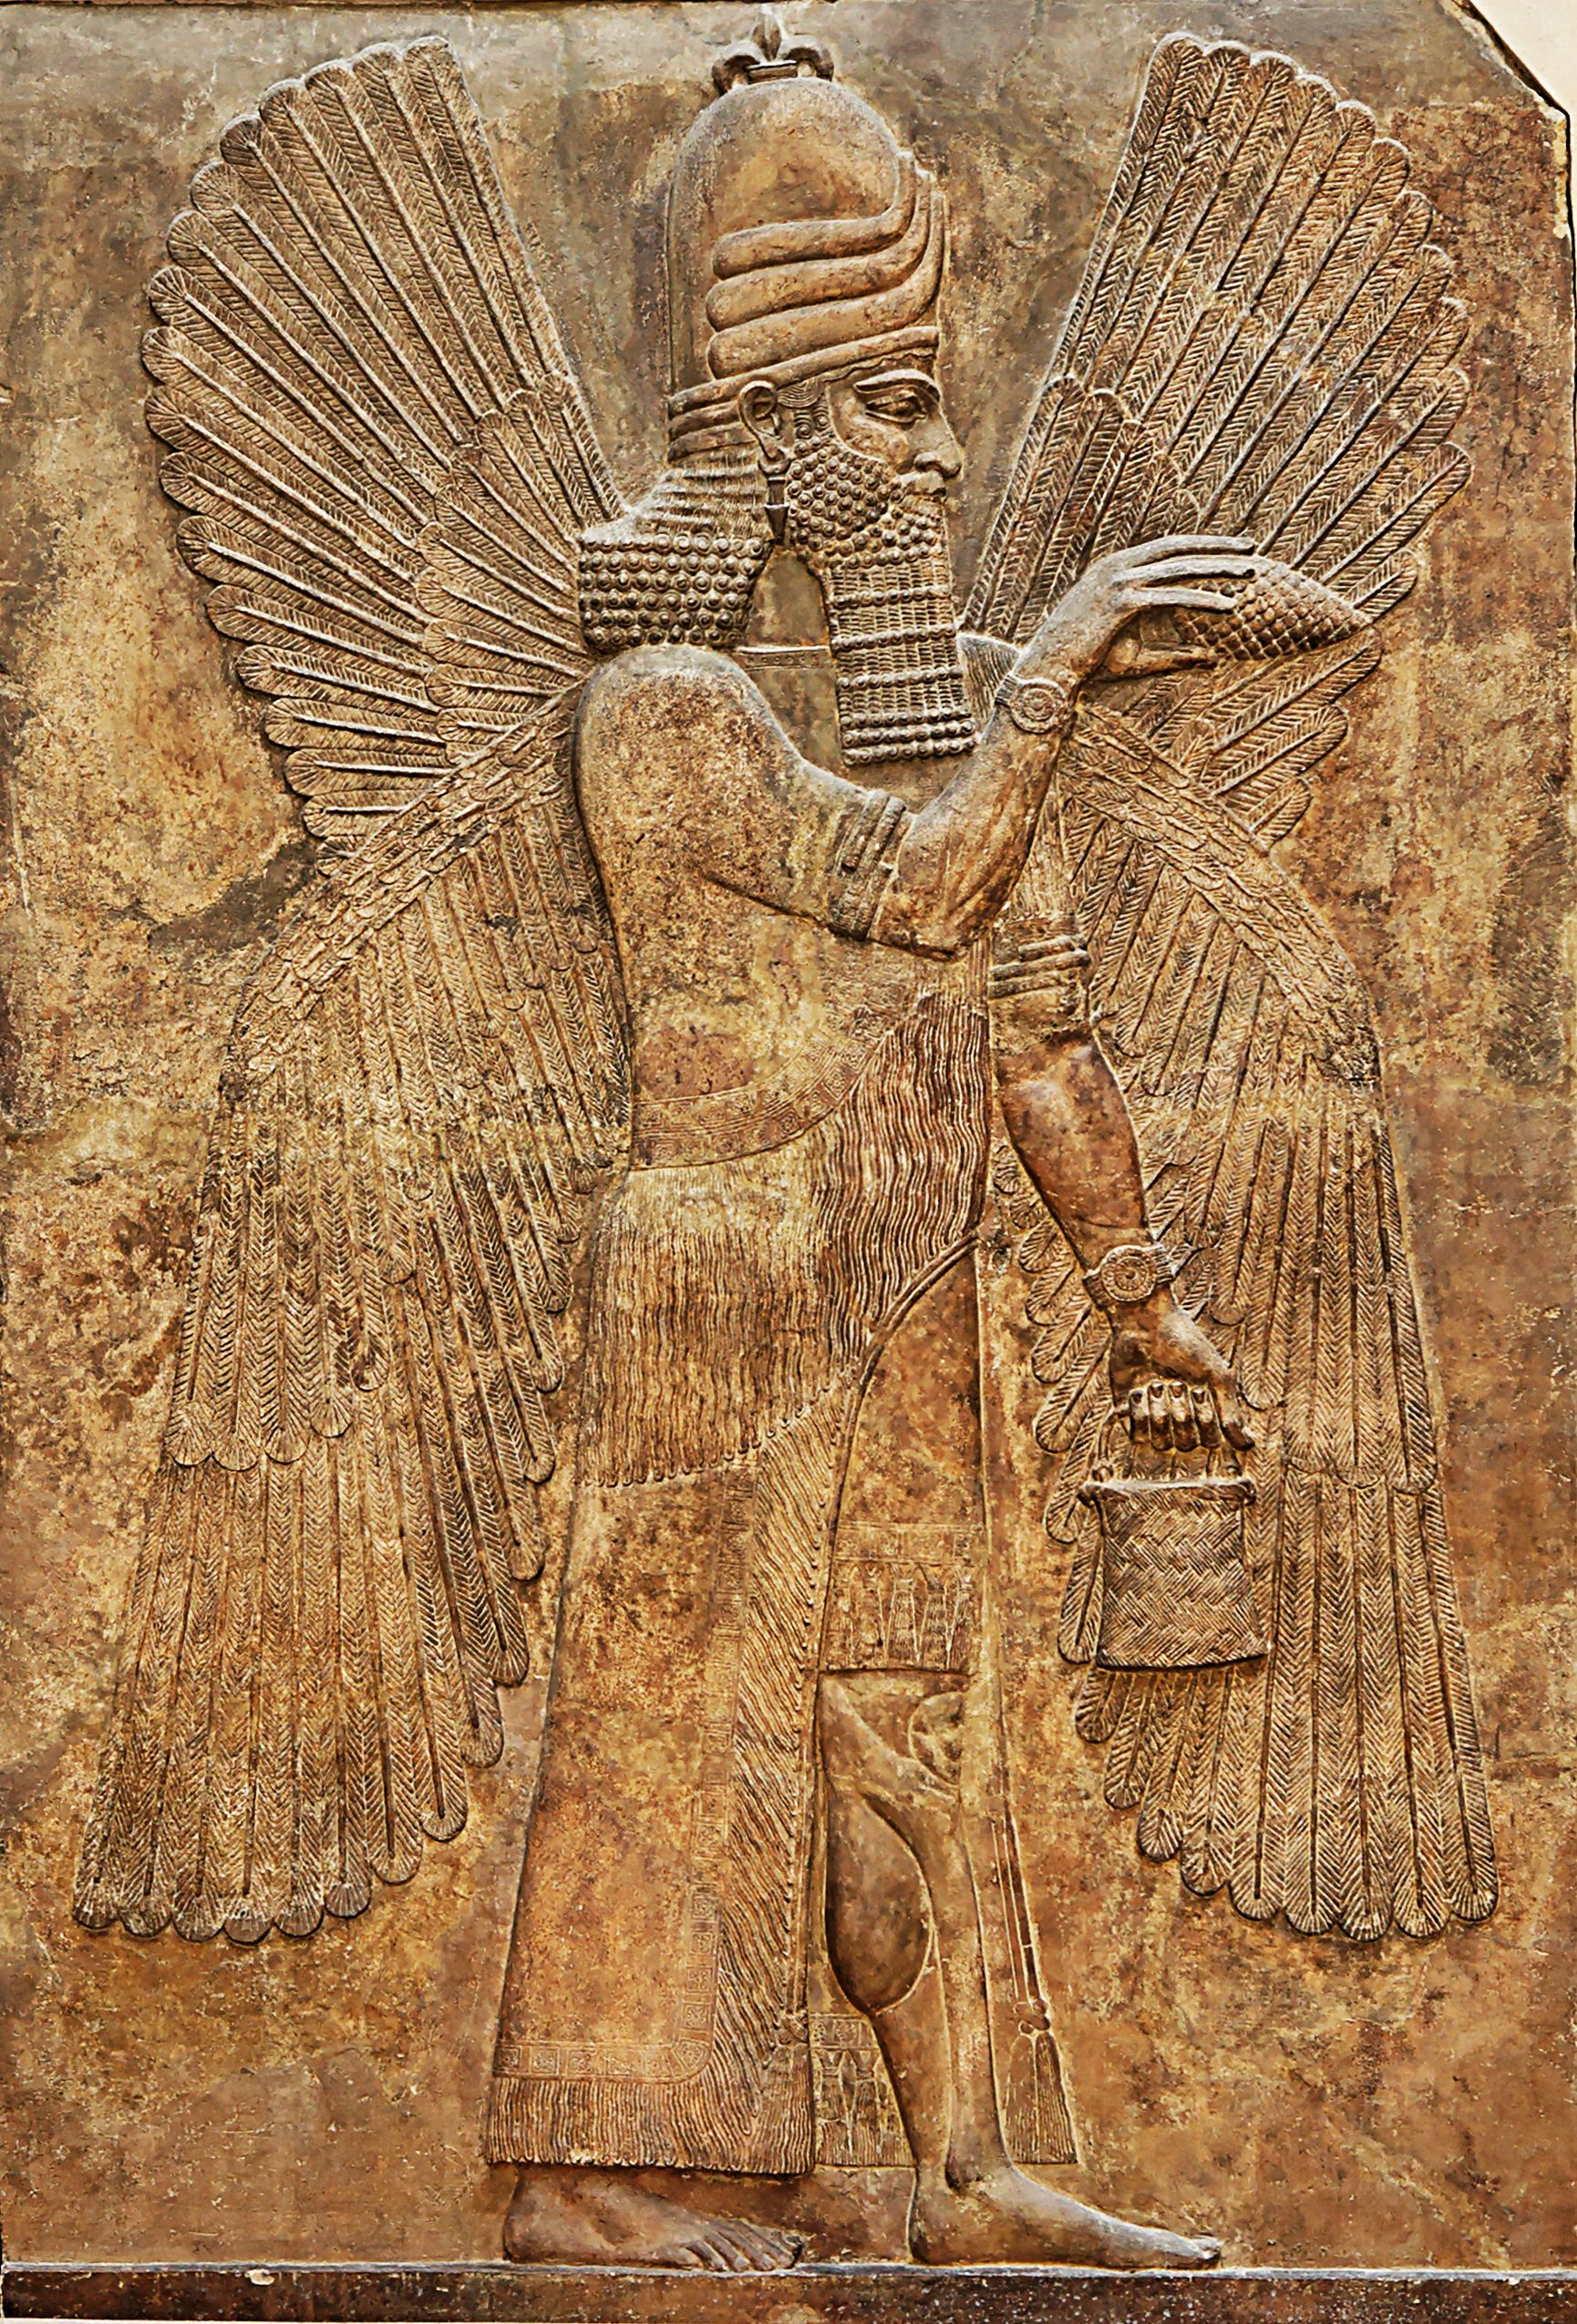 Ask The Nuwaupians Are The Anunnaki Flying Around With Wings